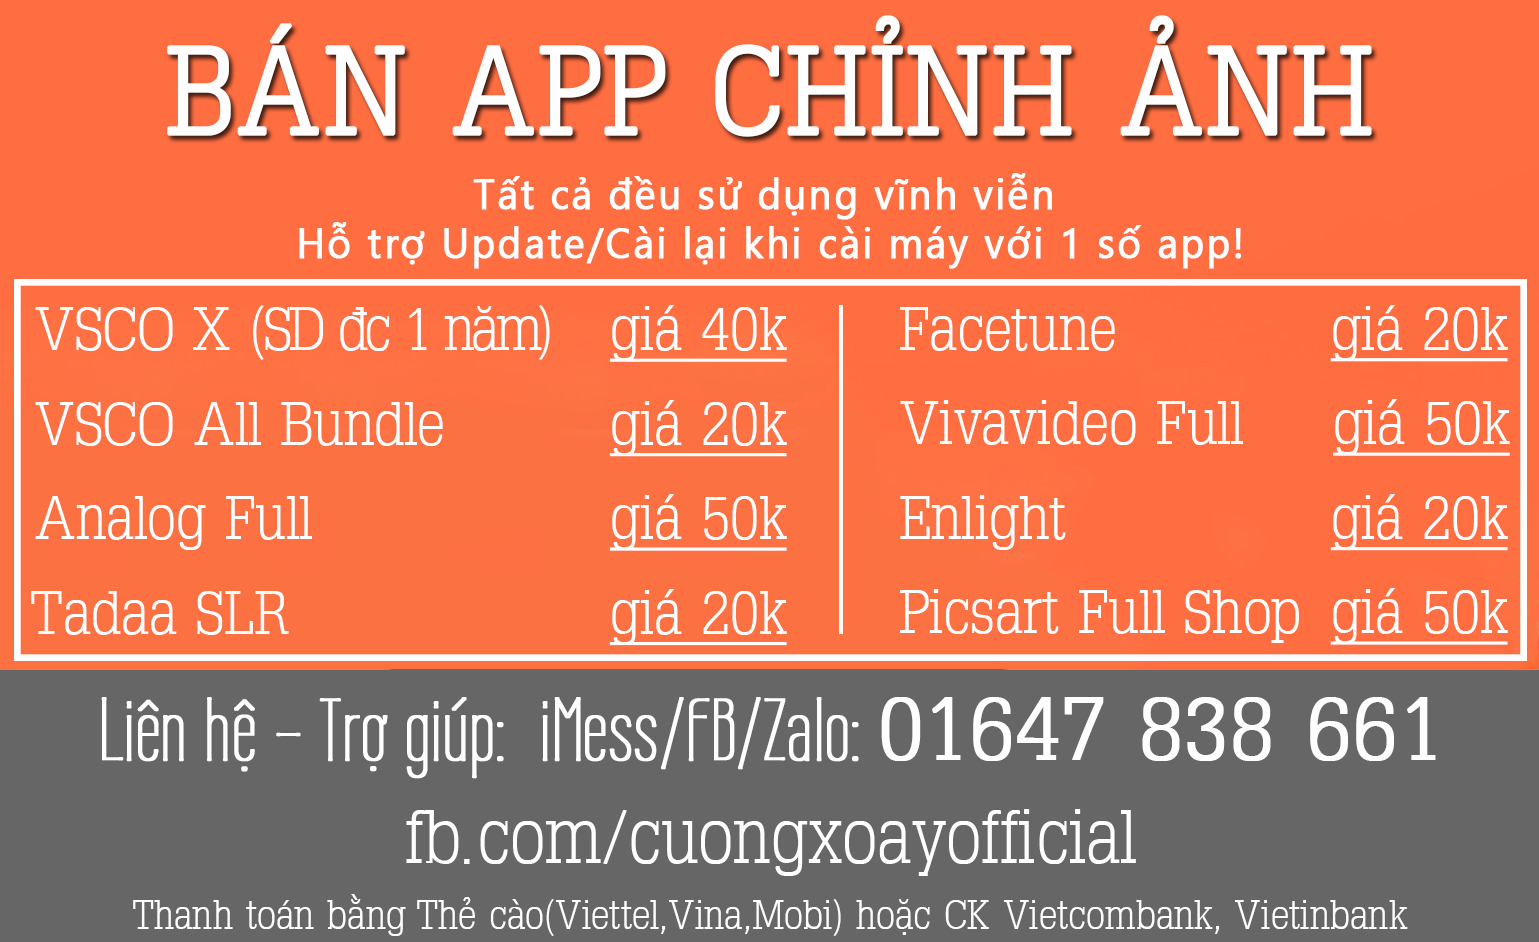 Tải ngay Analog Full, Tadaa SLR, Enlight, Afterlight, Picsart Full Shop, Facetune, Vivavideo, VSOX.. mới nhất 2017 Tải ngay Analog Full, Tadaa SLR, Enlight, Afterlight, Picsart Full Shop, Facetune, Vivavideo, VSOX.. mới nhất 2017 Tải ngay Analog Full, Tadaa SLR, Enlight, Afterlight, Picsart Full Shop, Facetune, Vivavideo, VSOX.. mới nhất 2017 Tải ngay Analog Full, Tadaa SLR, Enlight, Afterlight, Picsart Full Shop, Facetune, Vivavideo, VSOX.. mới nhất 2017 Tải ngay Analog Full, Tadaa SLR, Enlight, Afterlight, Picsart Full Shop, Facetune, Vivavideo, VSOX.. mới nhất 2017 Tải ngay Analog Full, Tadaa SLR, Enlight, Afterlight, Picsart Full Shop, Facetune, Vivavideo, VSOX.. mới nhất 2017